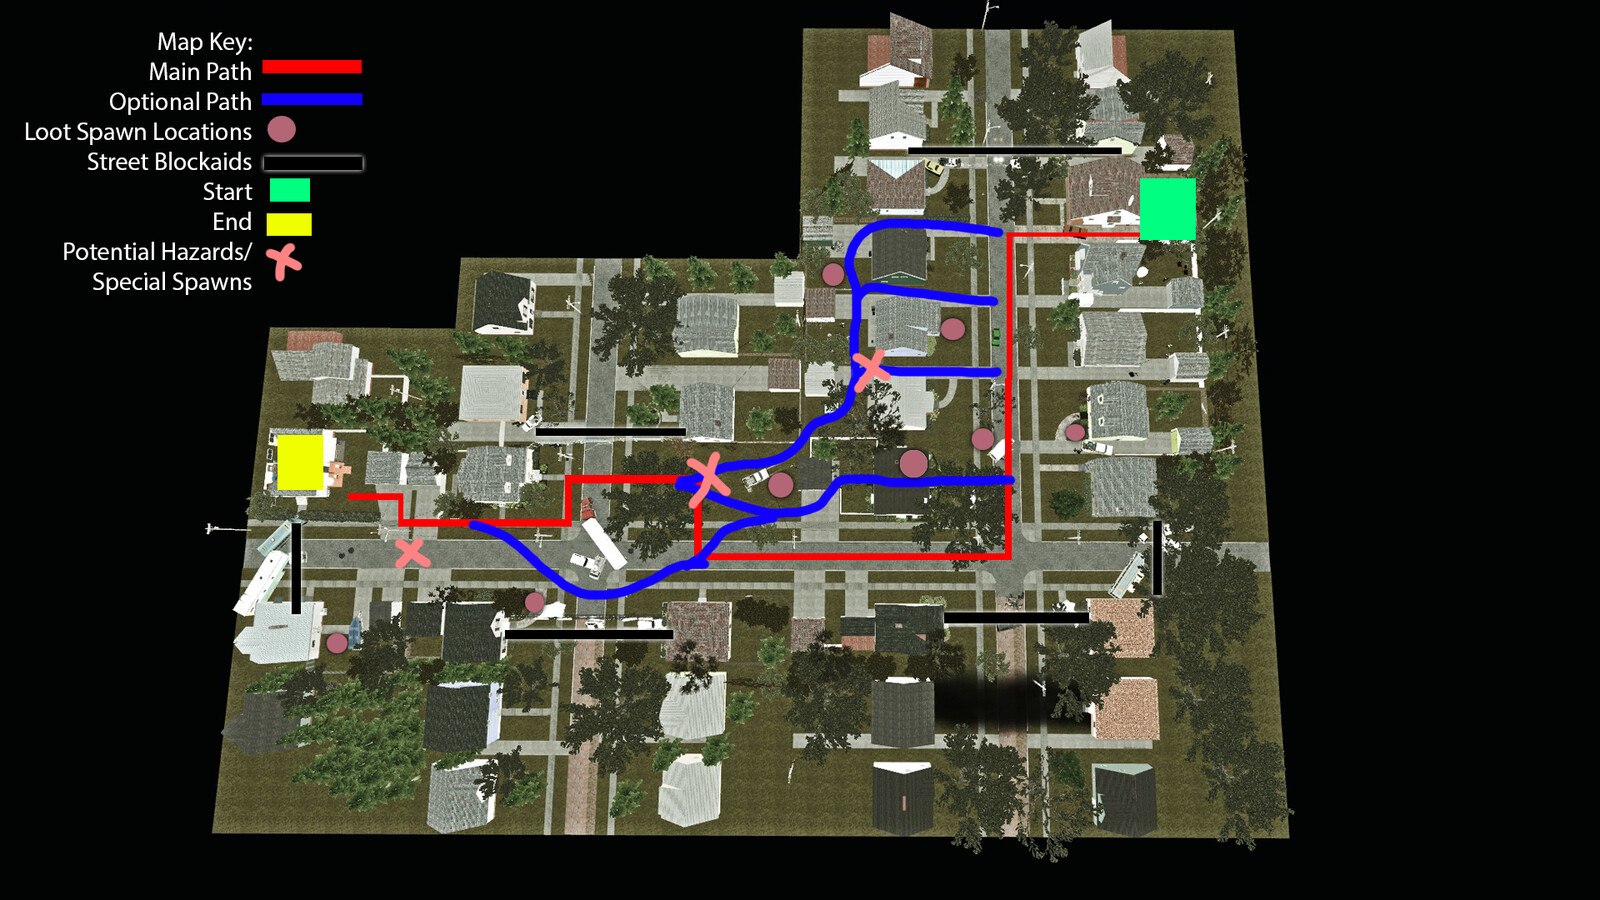 Top down view of the Streets level. Players can follow the red or blue paths and still end up at the safe house. There are markers directing players as they make their way through the level to reinforce player decisions, examples shown below.